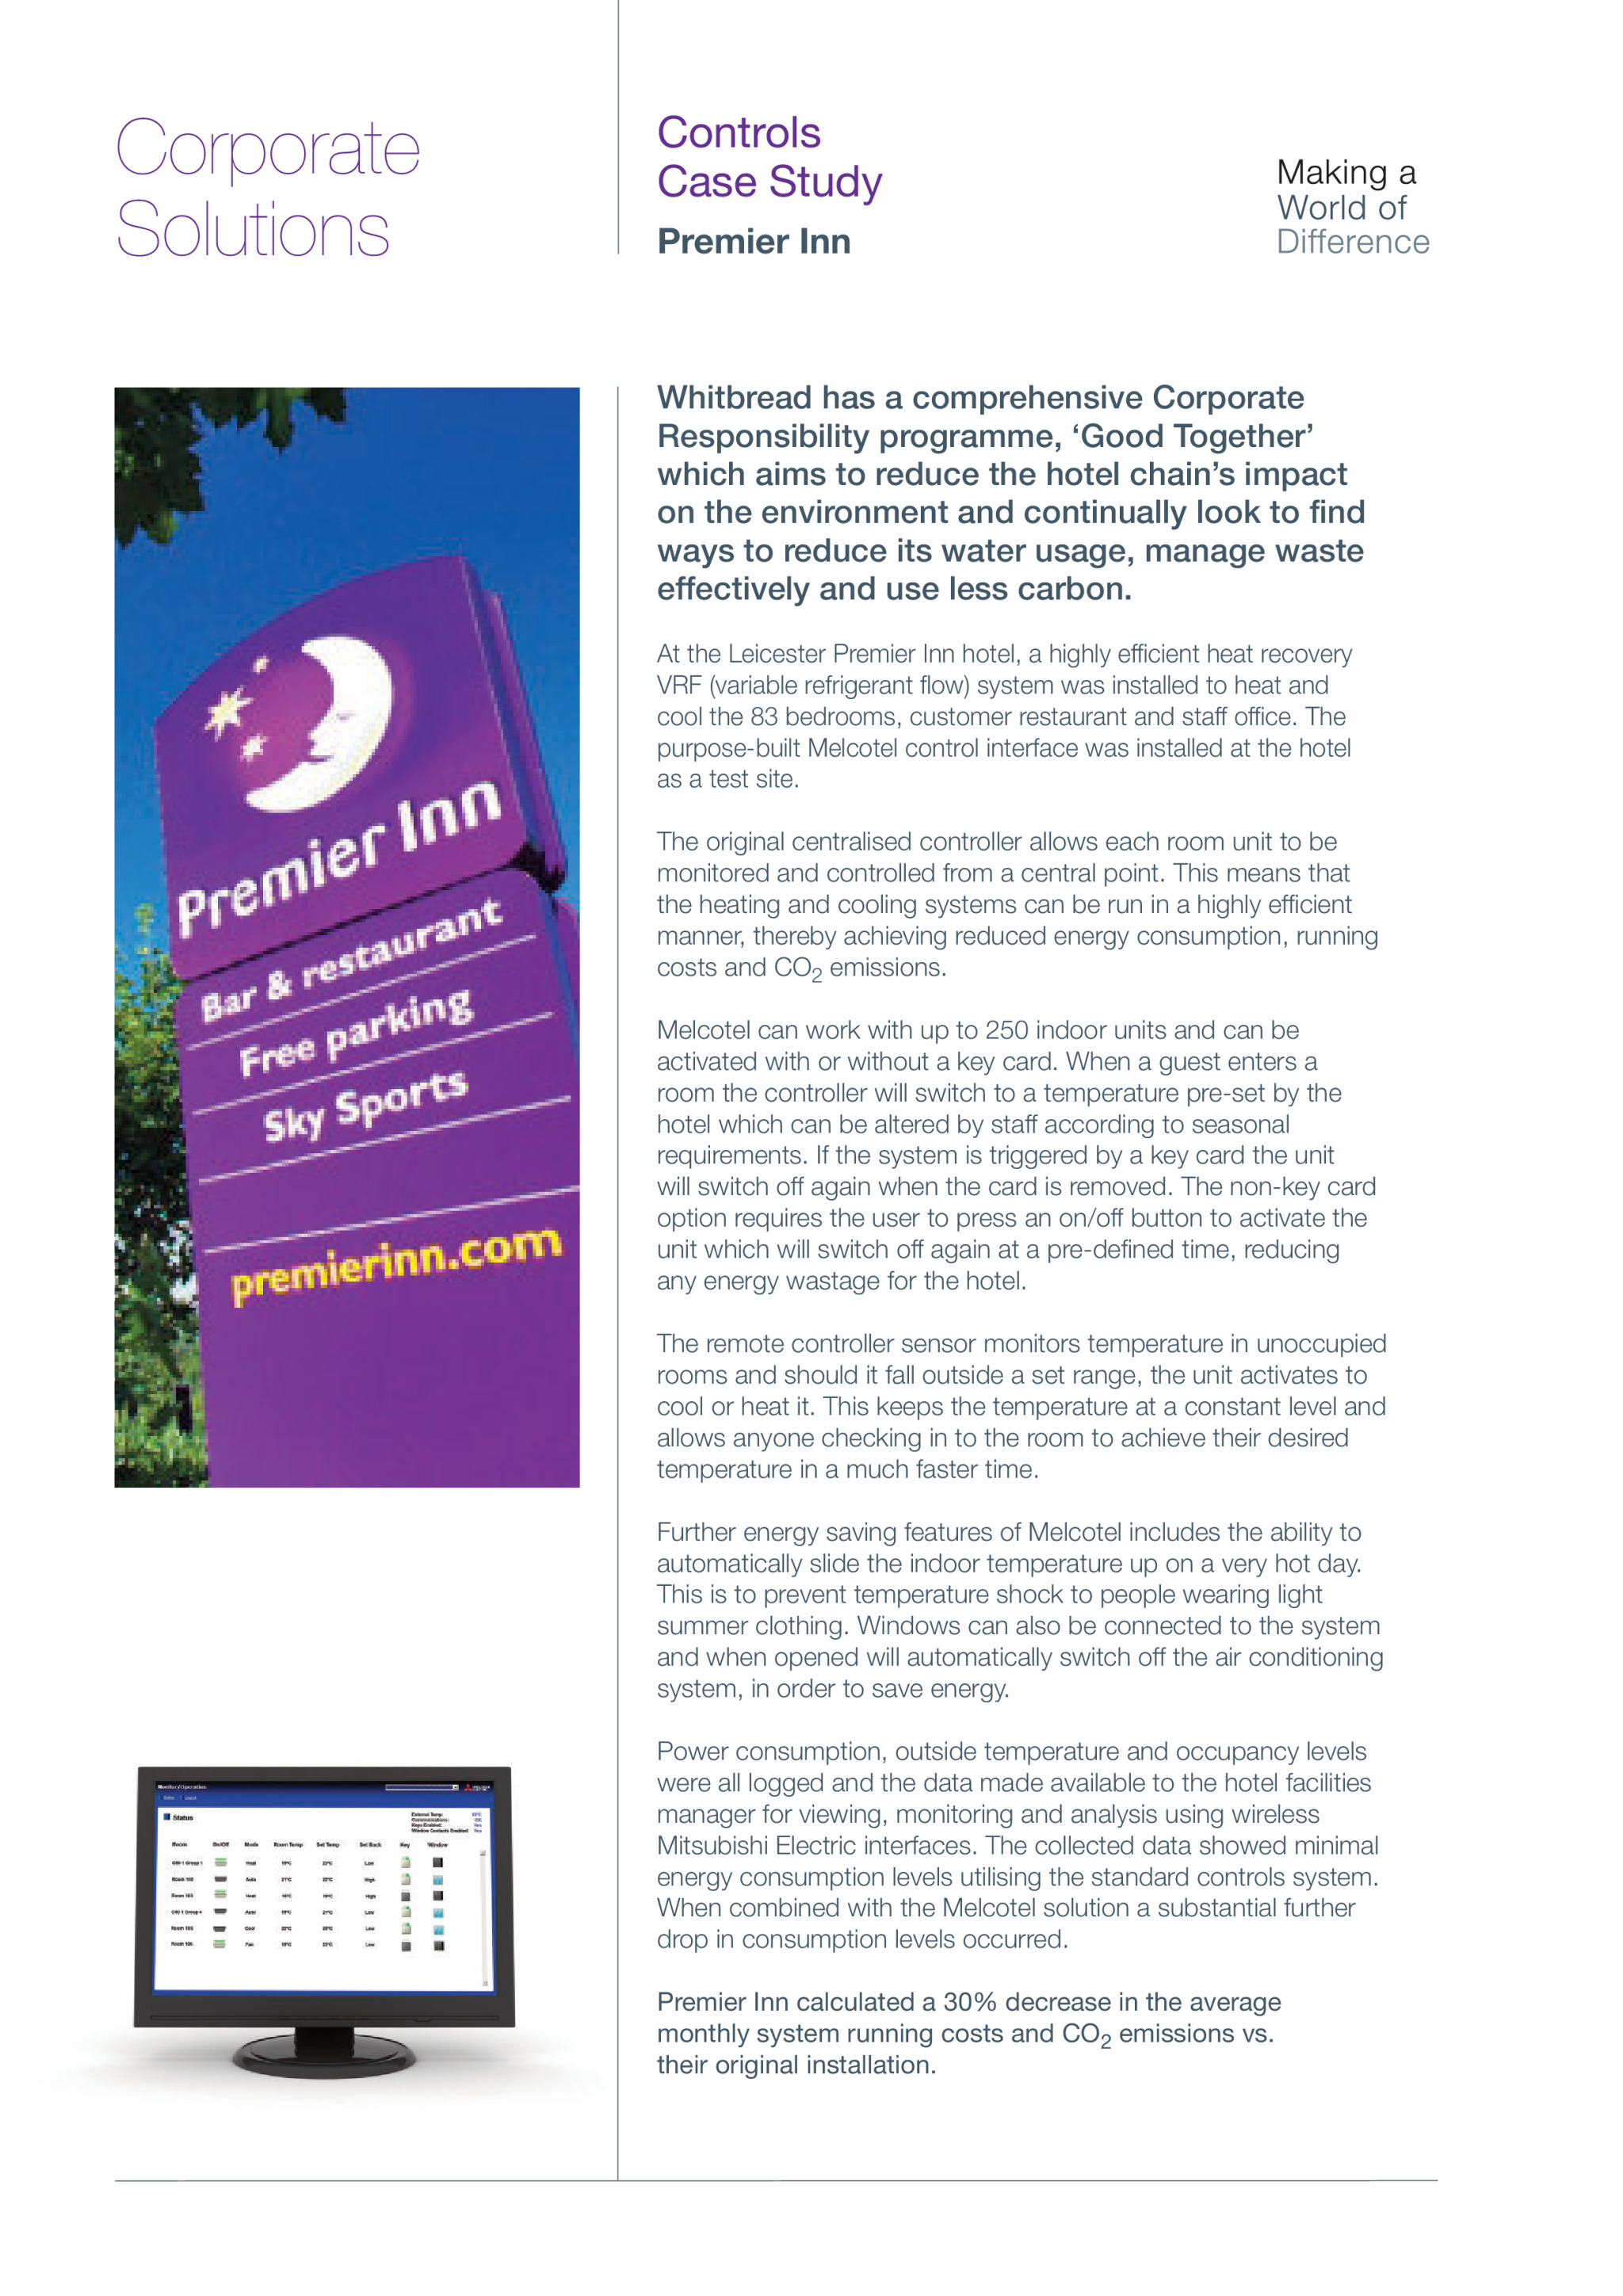 Premier Inn Heat Recovery VRF & Controls Leicestershire